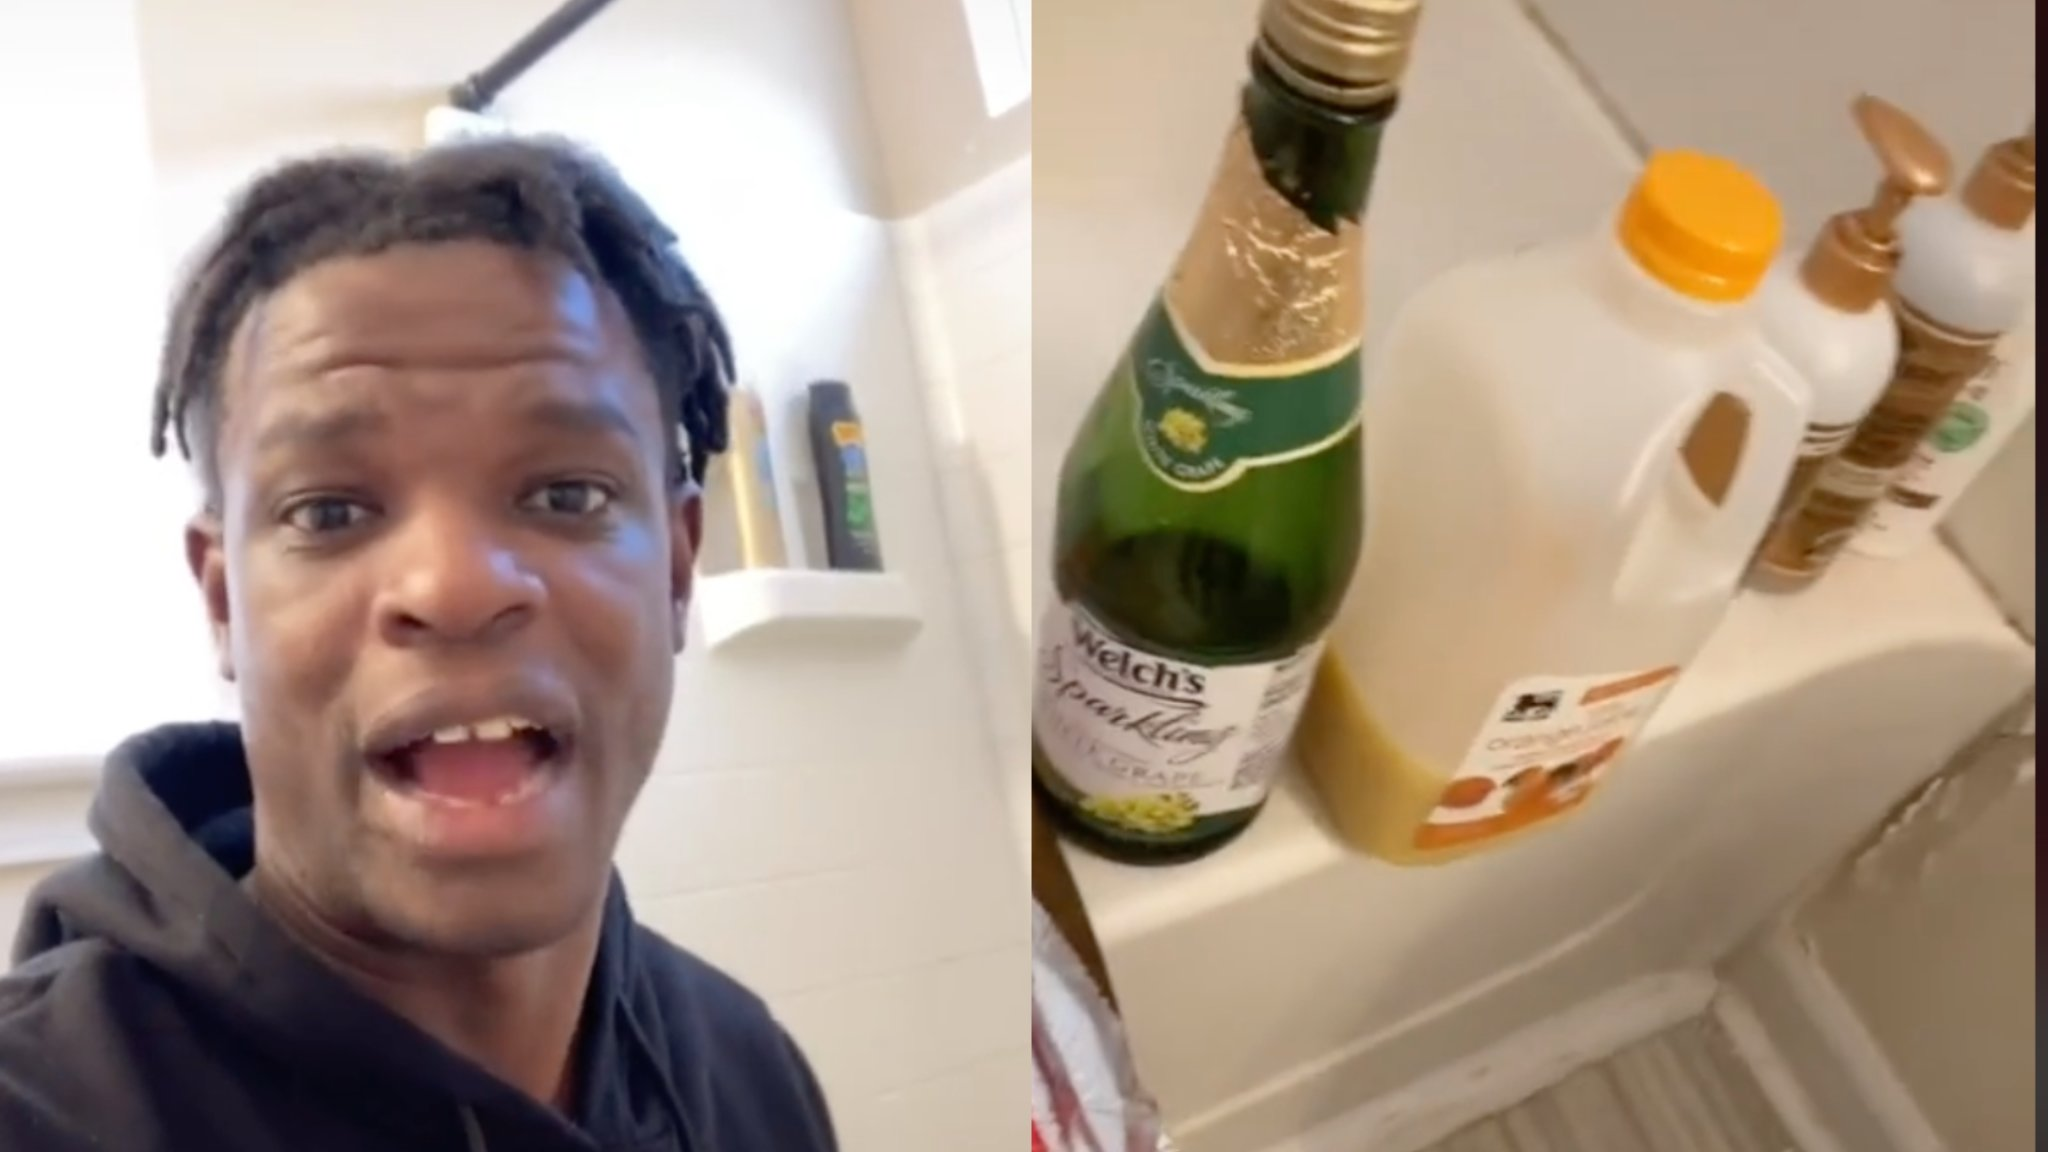 Dad Discovers 11-Year-Old's 'Self-Care' Routine Includes 'Mimosas' & Snacks in the Bath